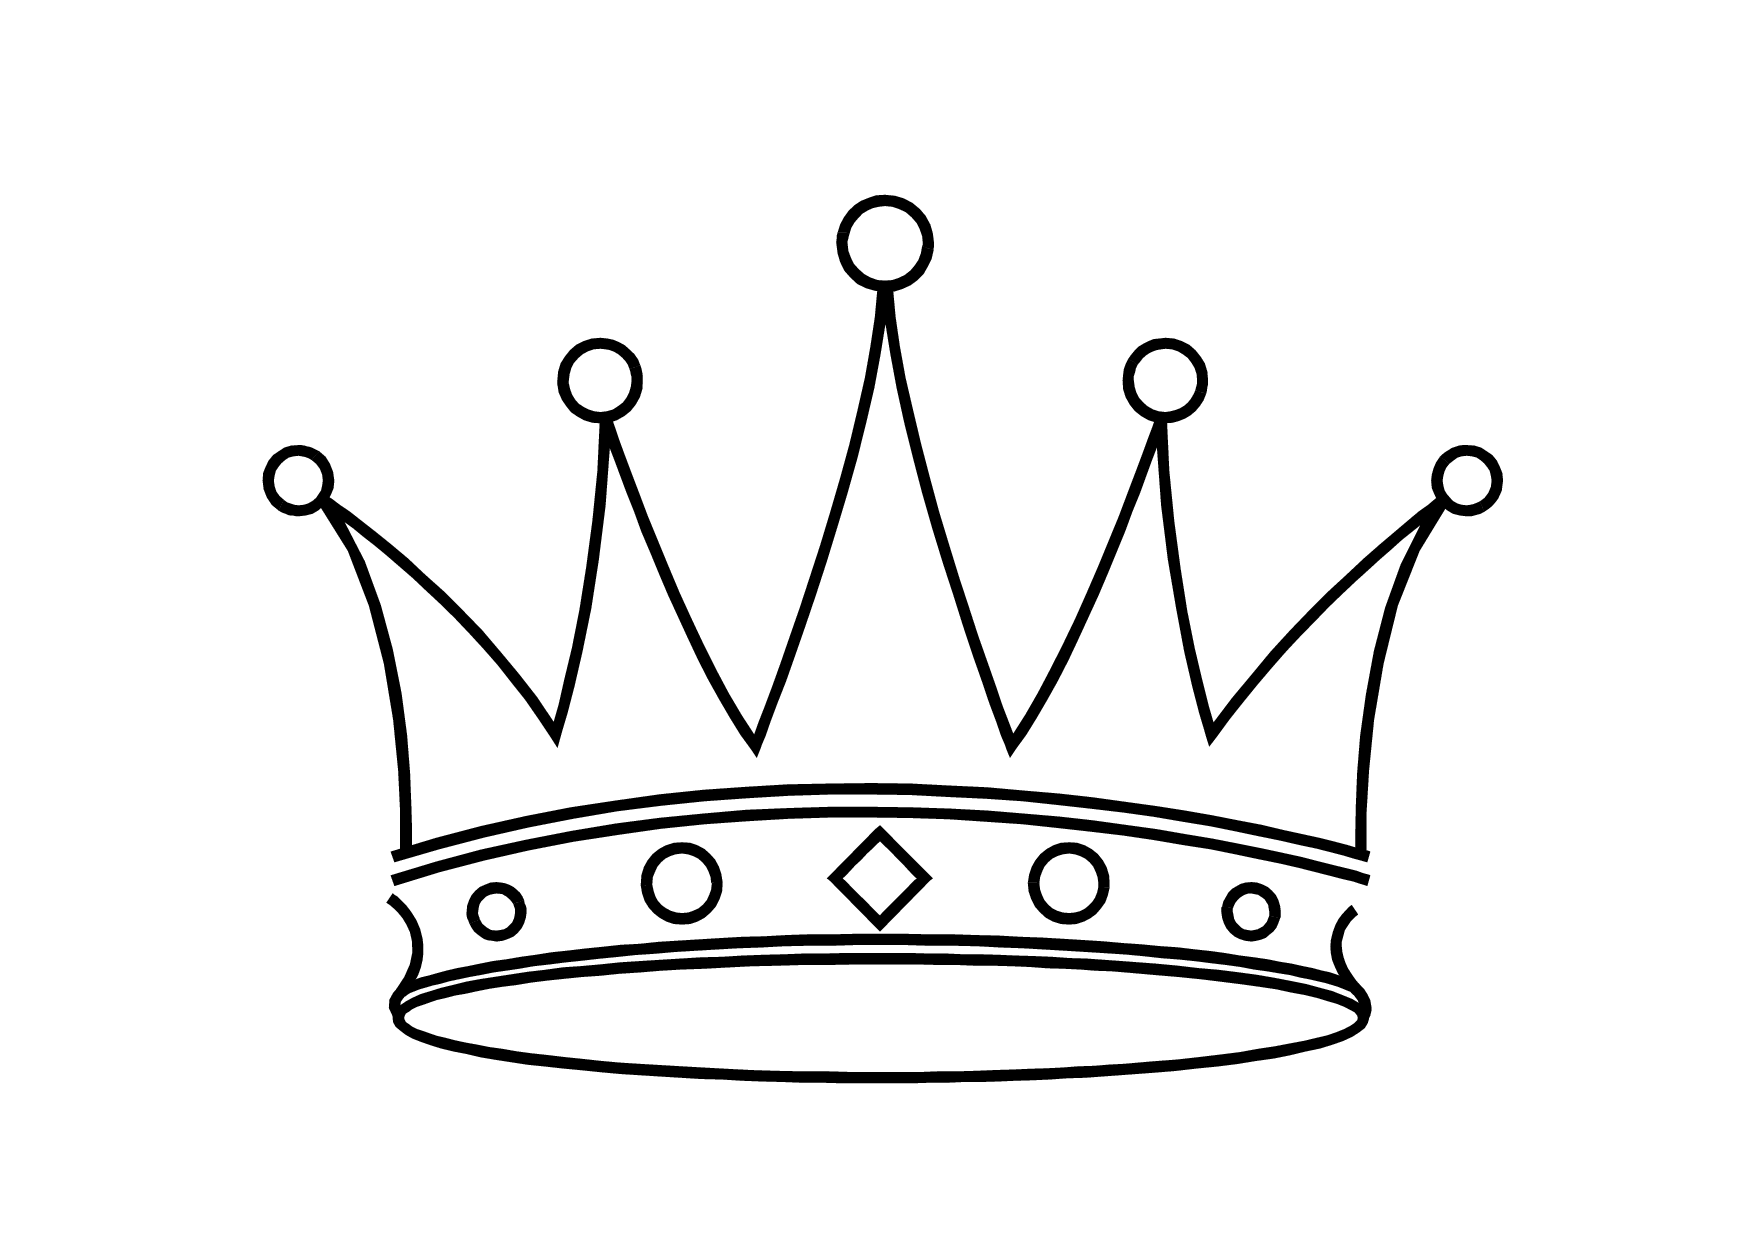 King Crown Outline Clipart #1 - Crown Outline Clip Art